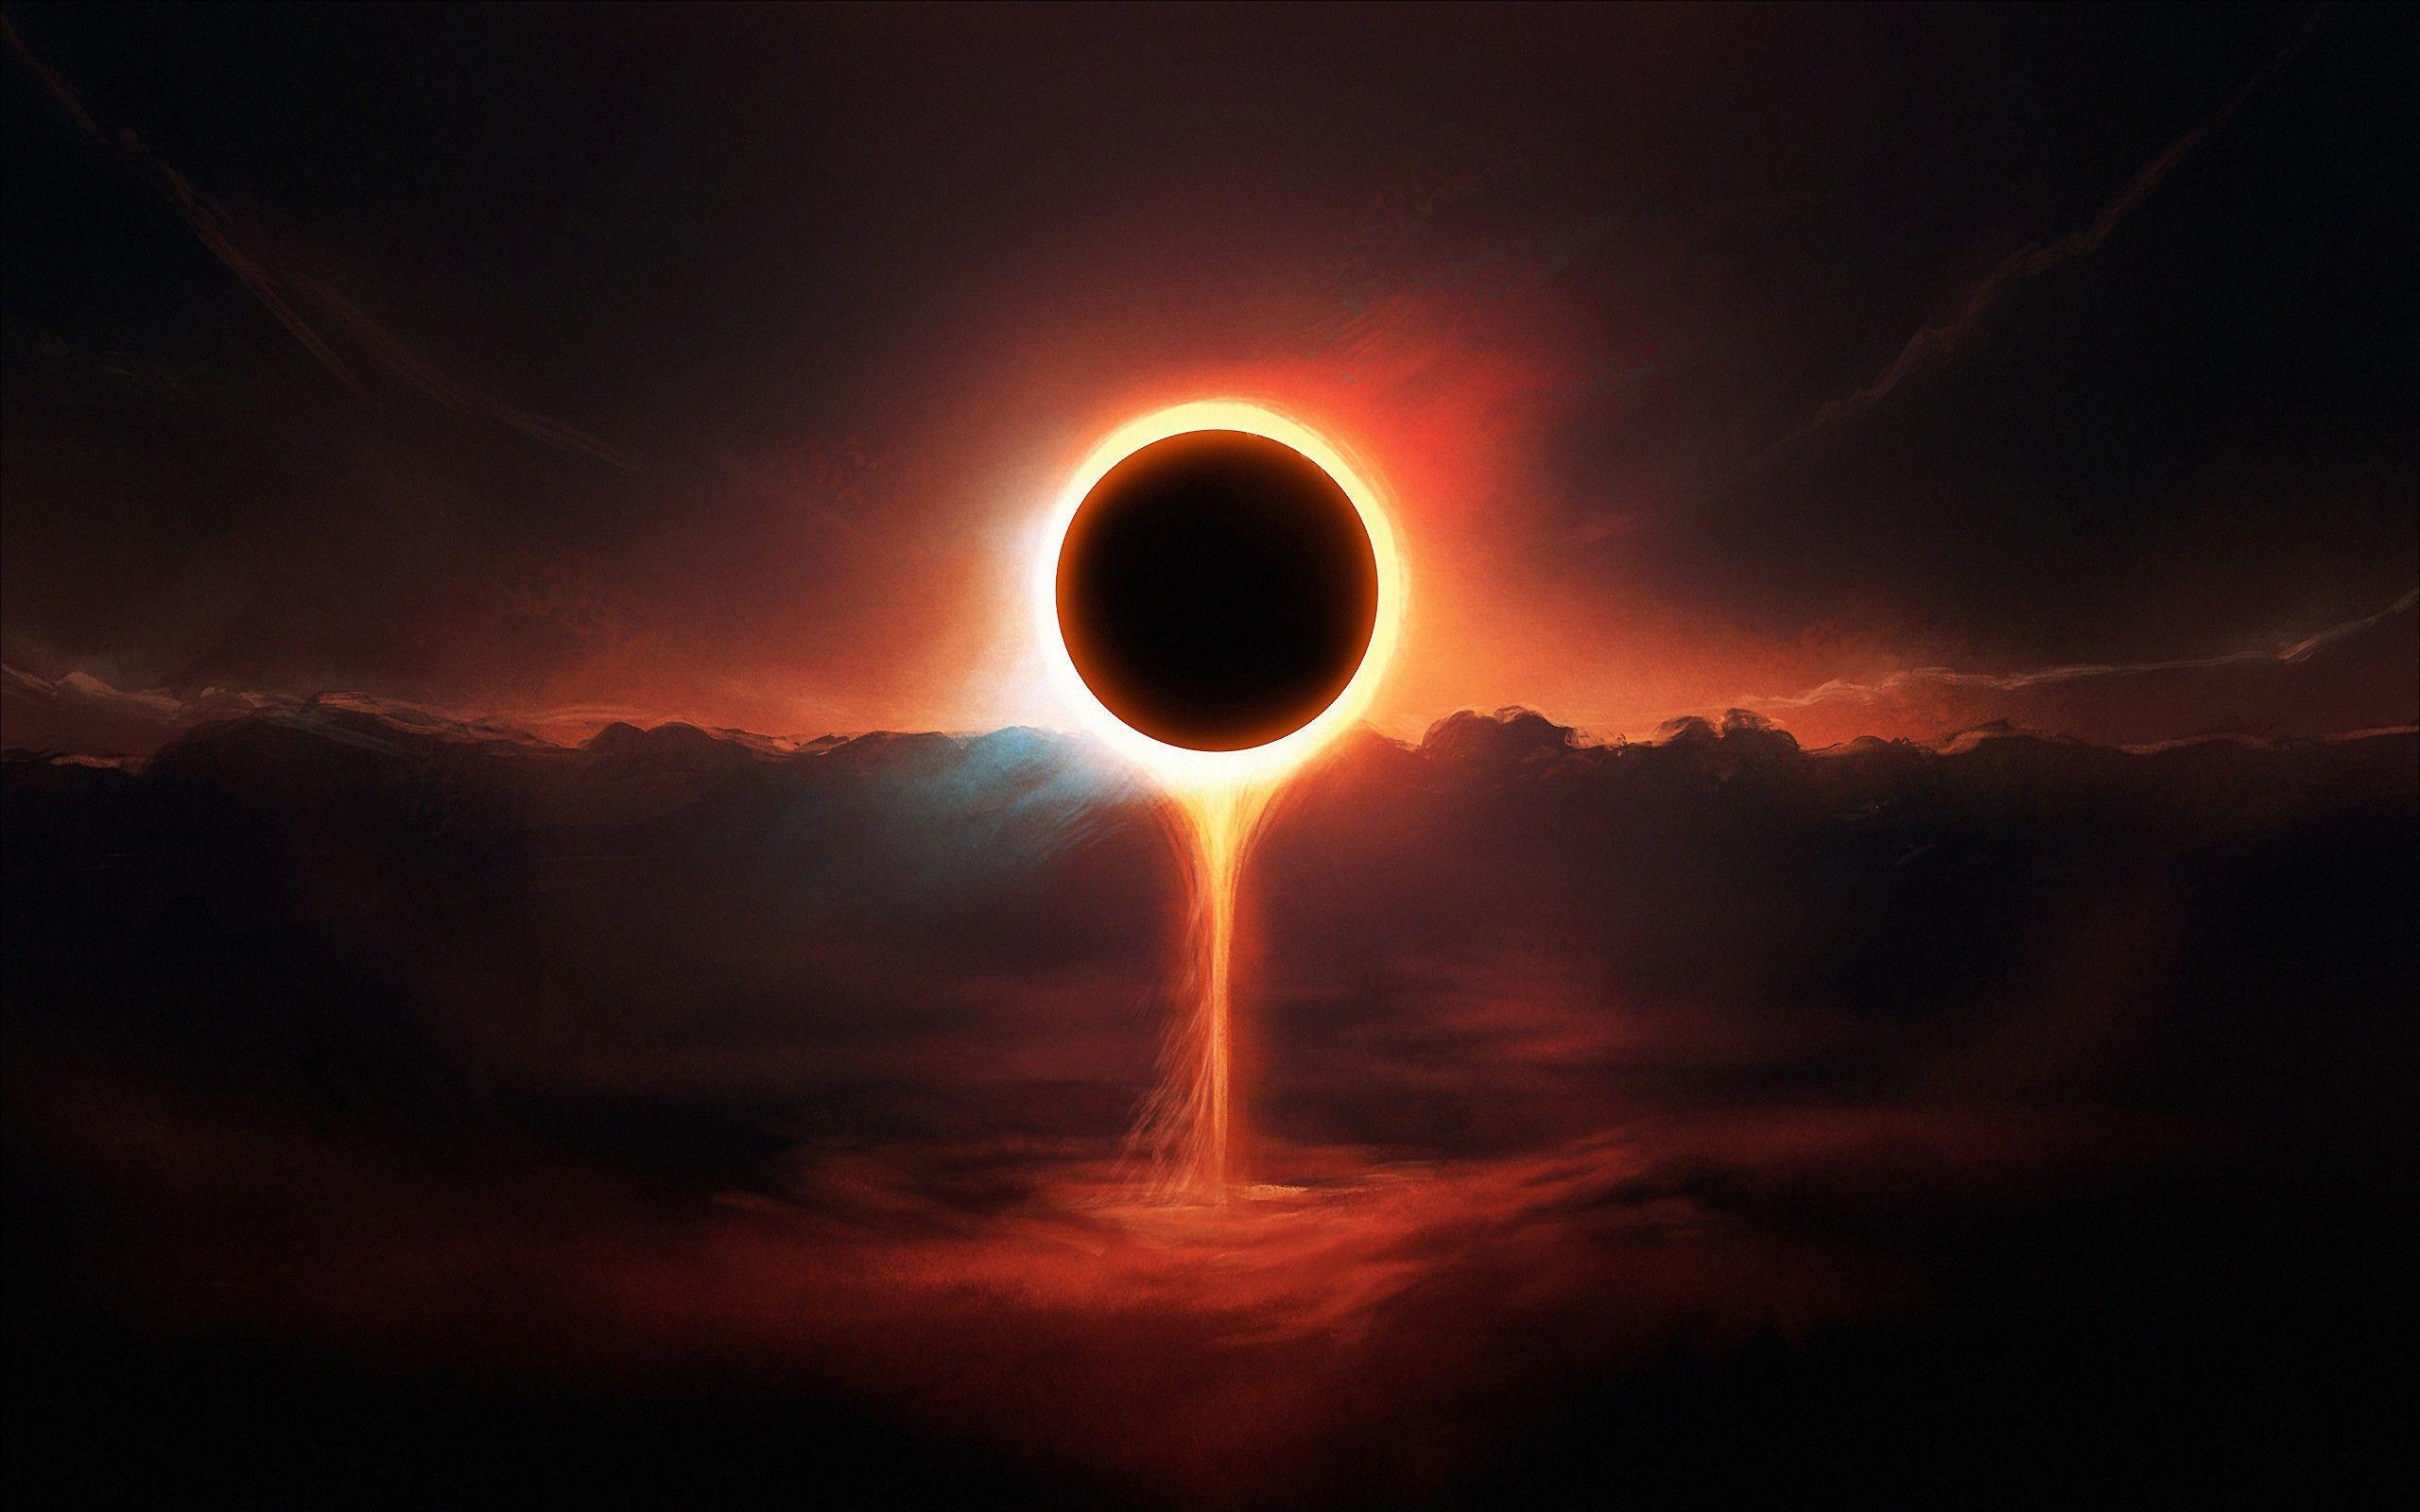 Solar Eclipse Wallpapers - Wallpaper Cave Wallpaper